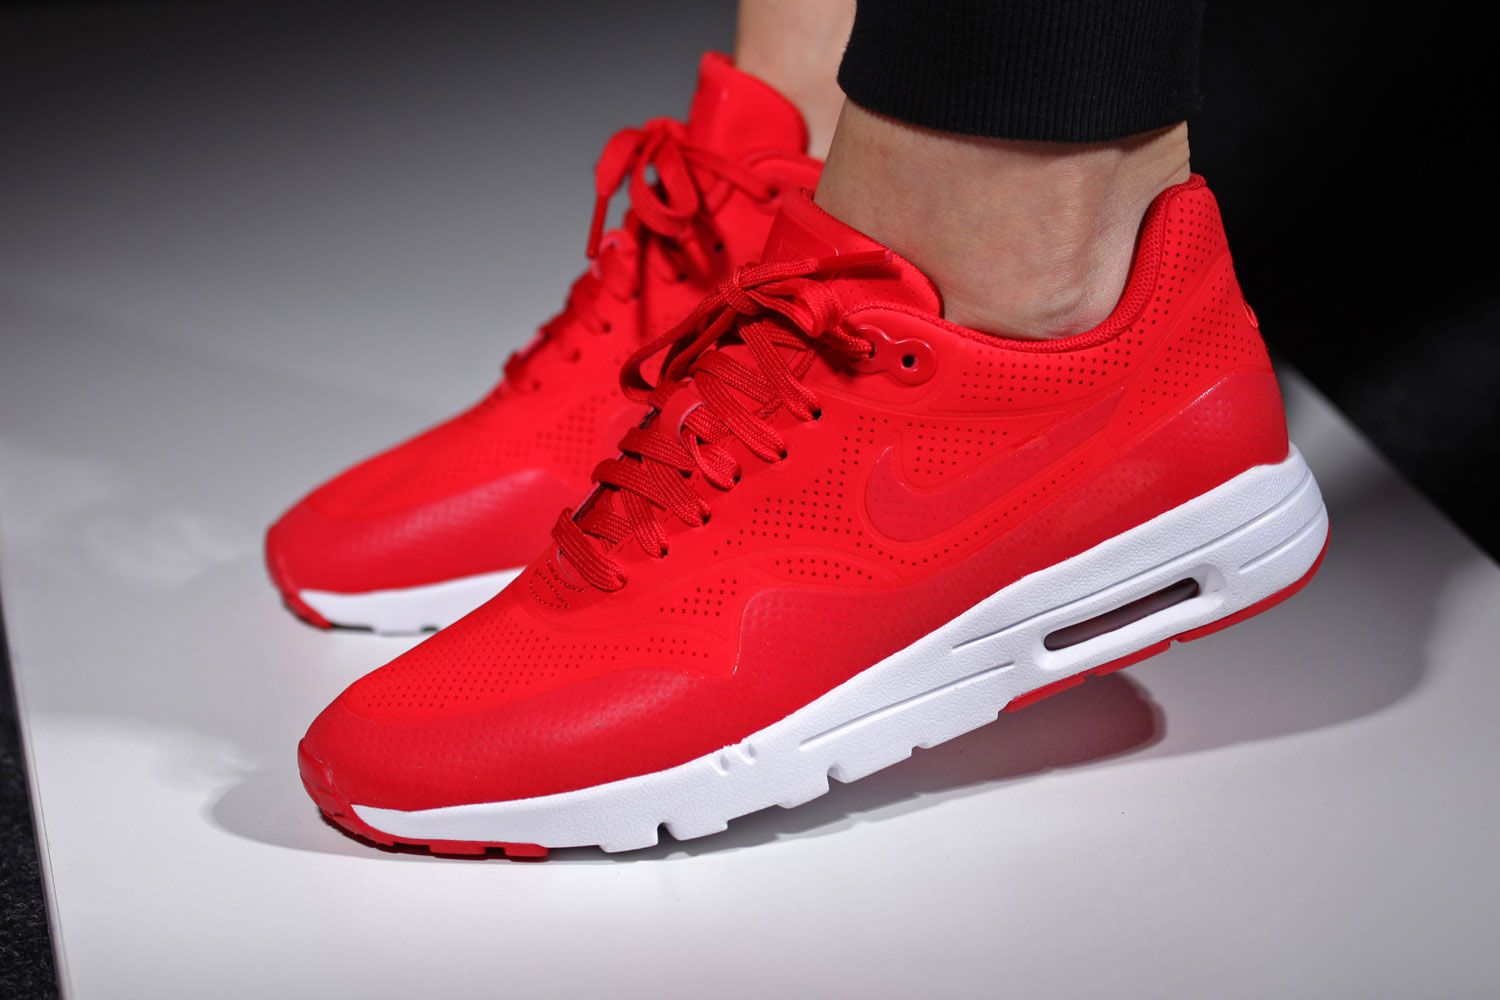 outlet store f36e6 c1e3f ... white womens running shoes. nike-air-max-1-ultra-moire-university-red-1